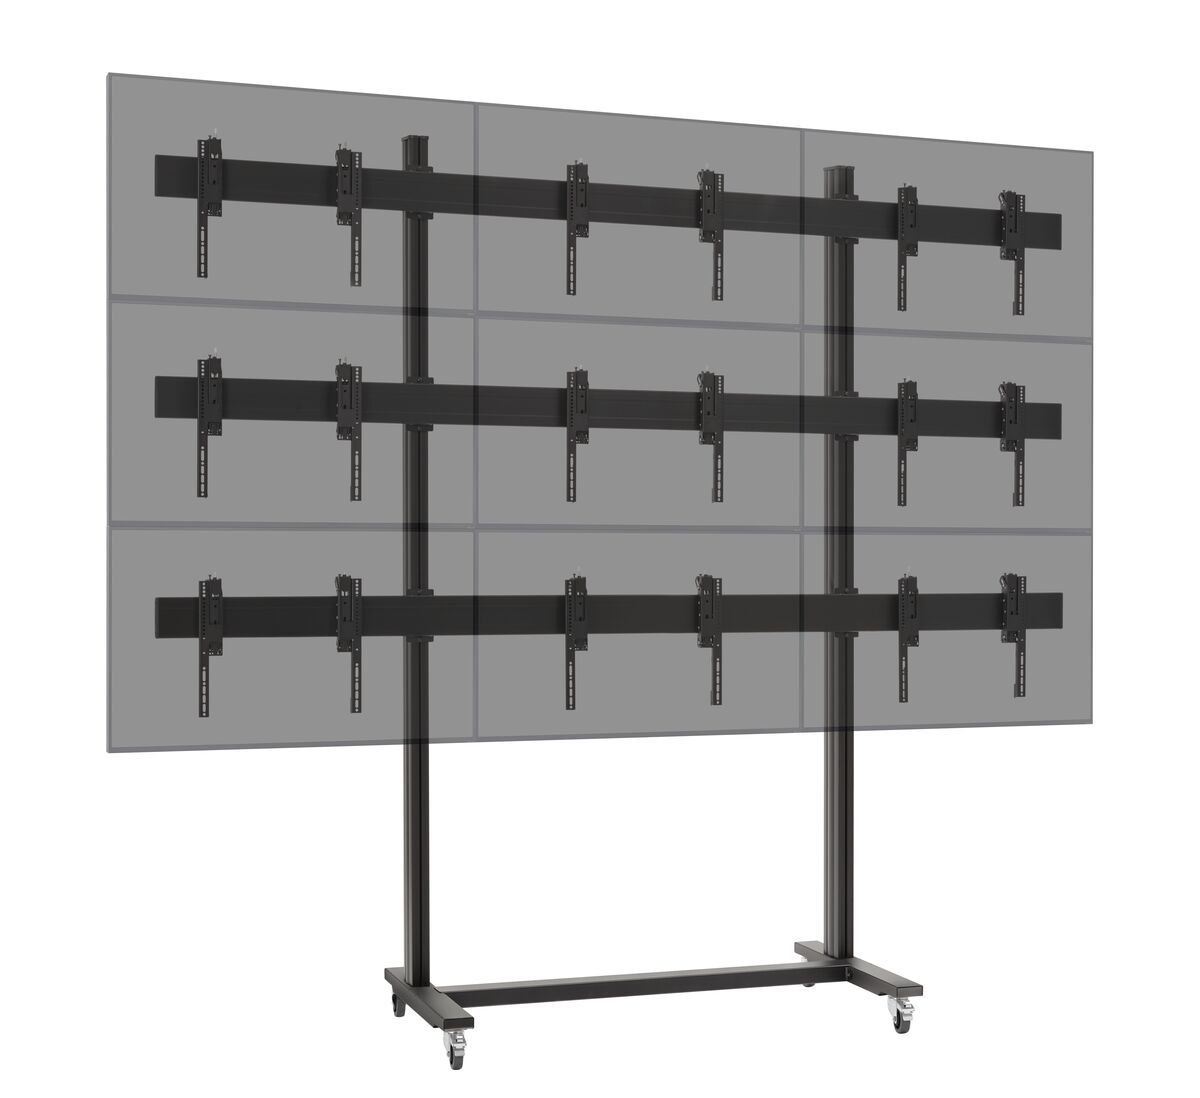 Vogel's TVW3347 Video wall trolley 3x3 - Application